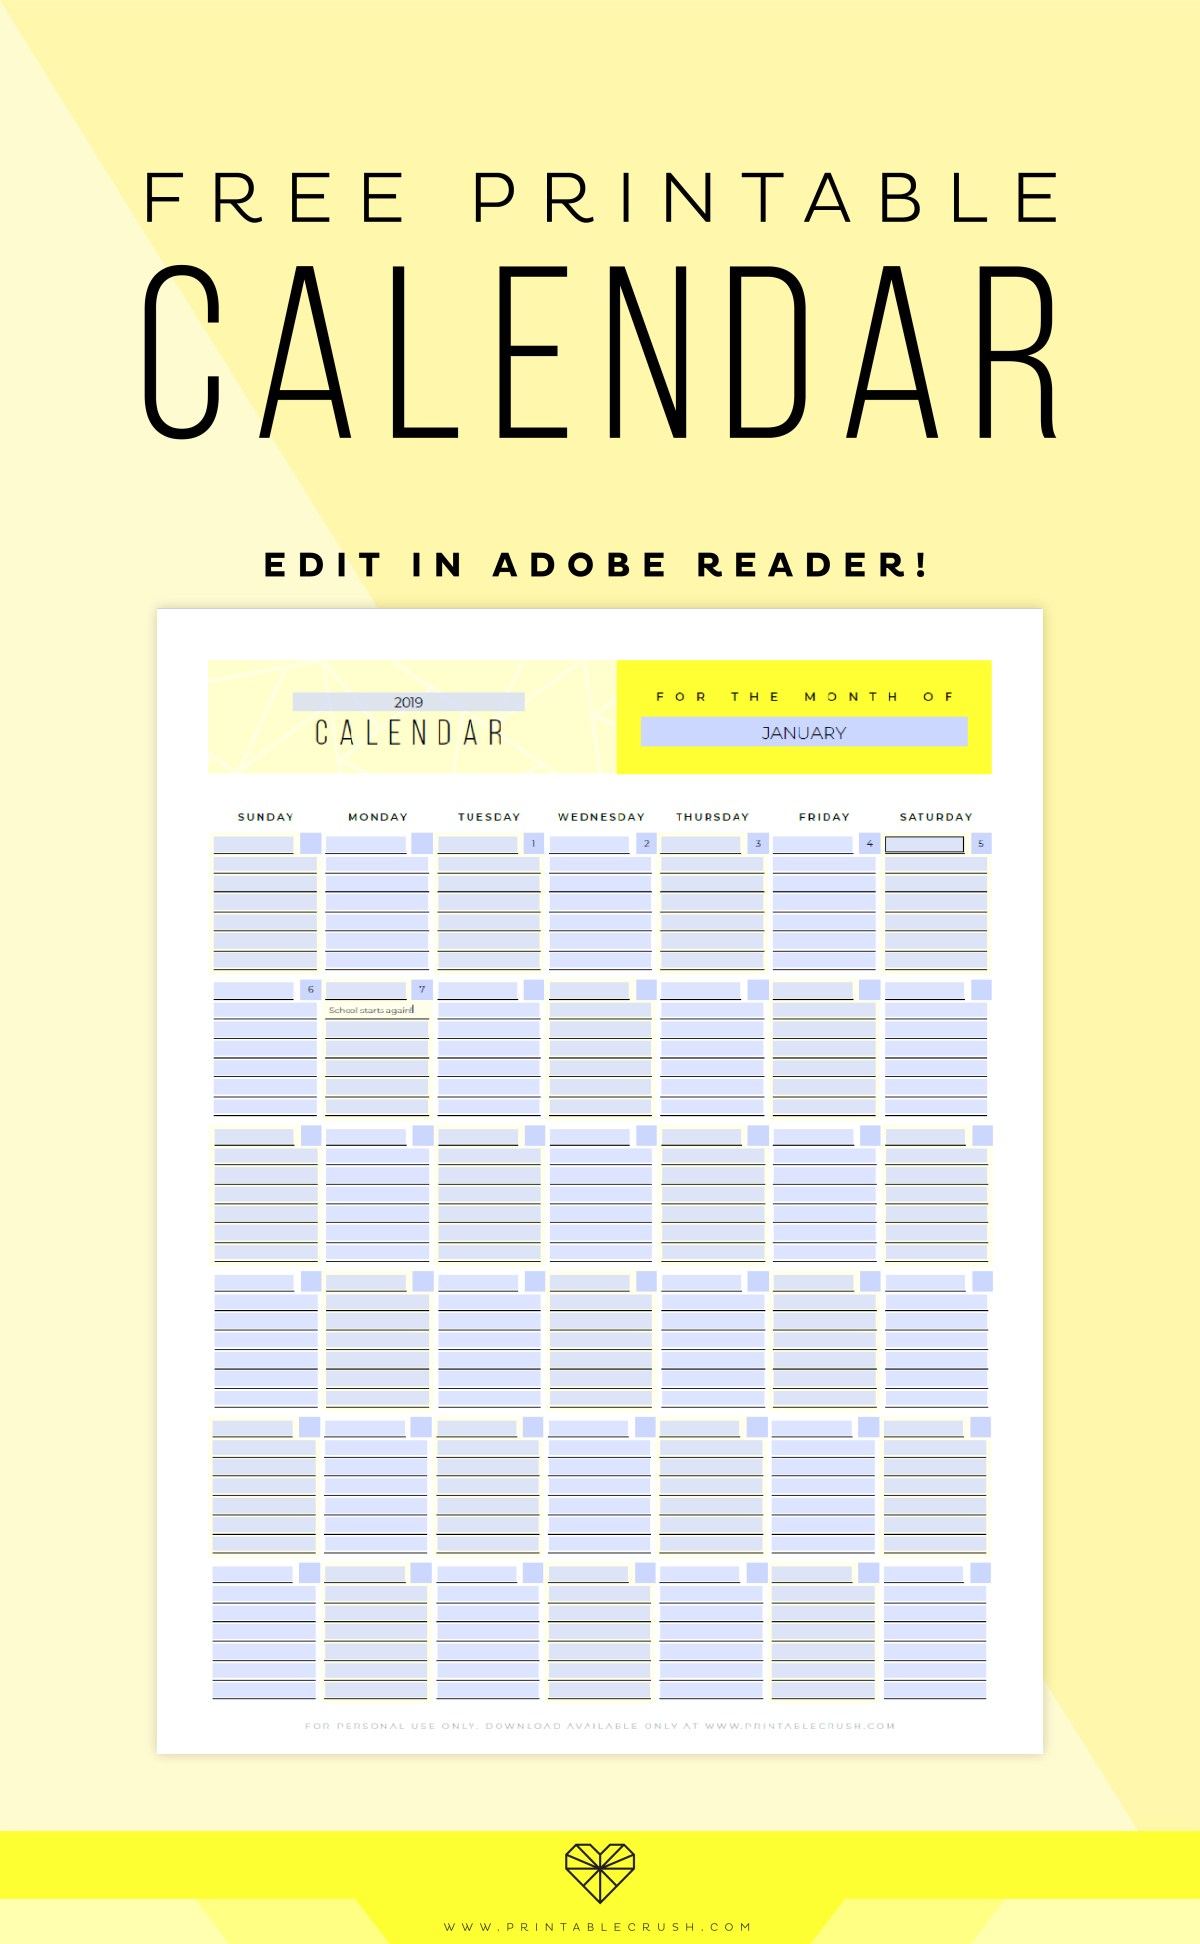 Download this FREE Printable Calendar and you'll never need another calendar again! Type the year, month, and dates in Adobe Reader, type in your schedule, then print!-07